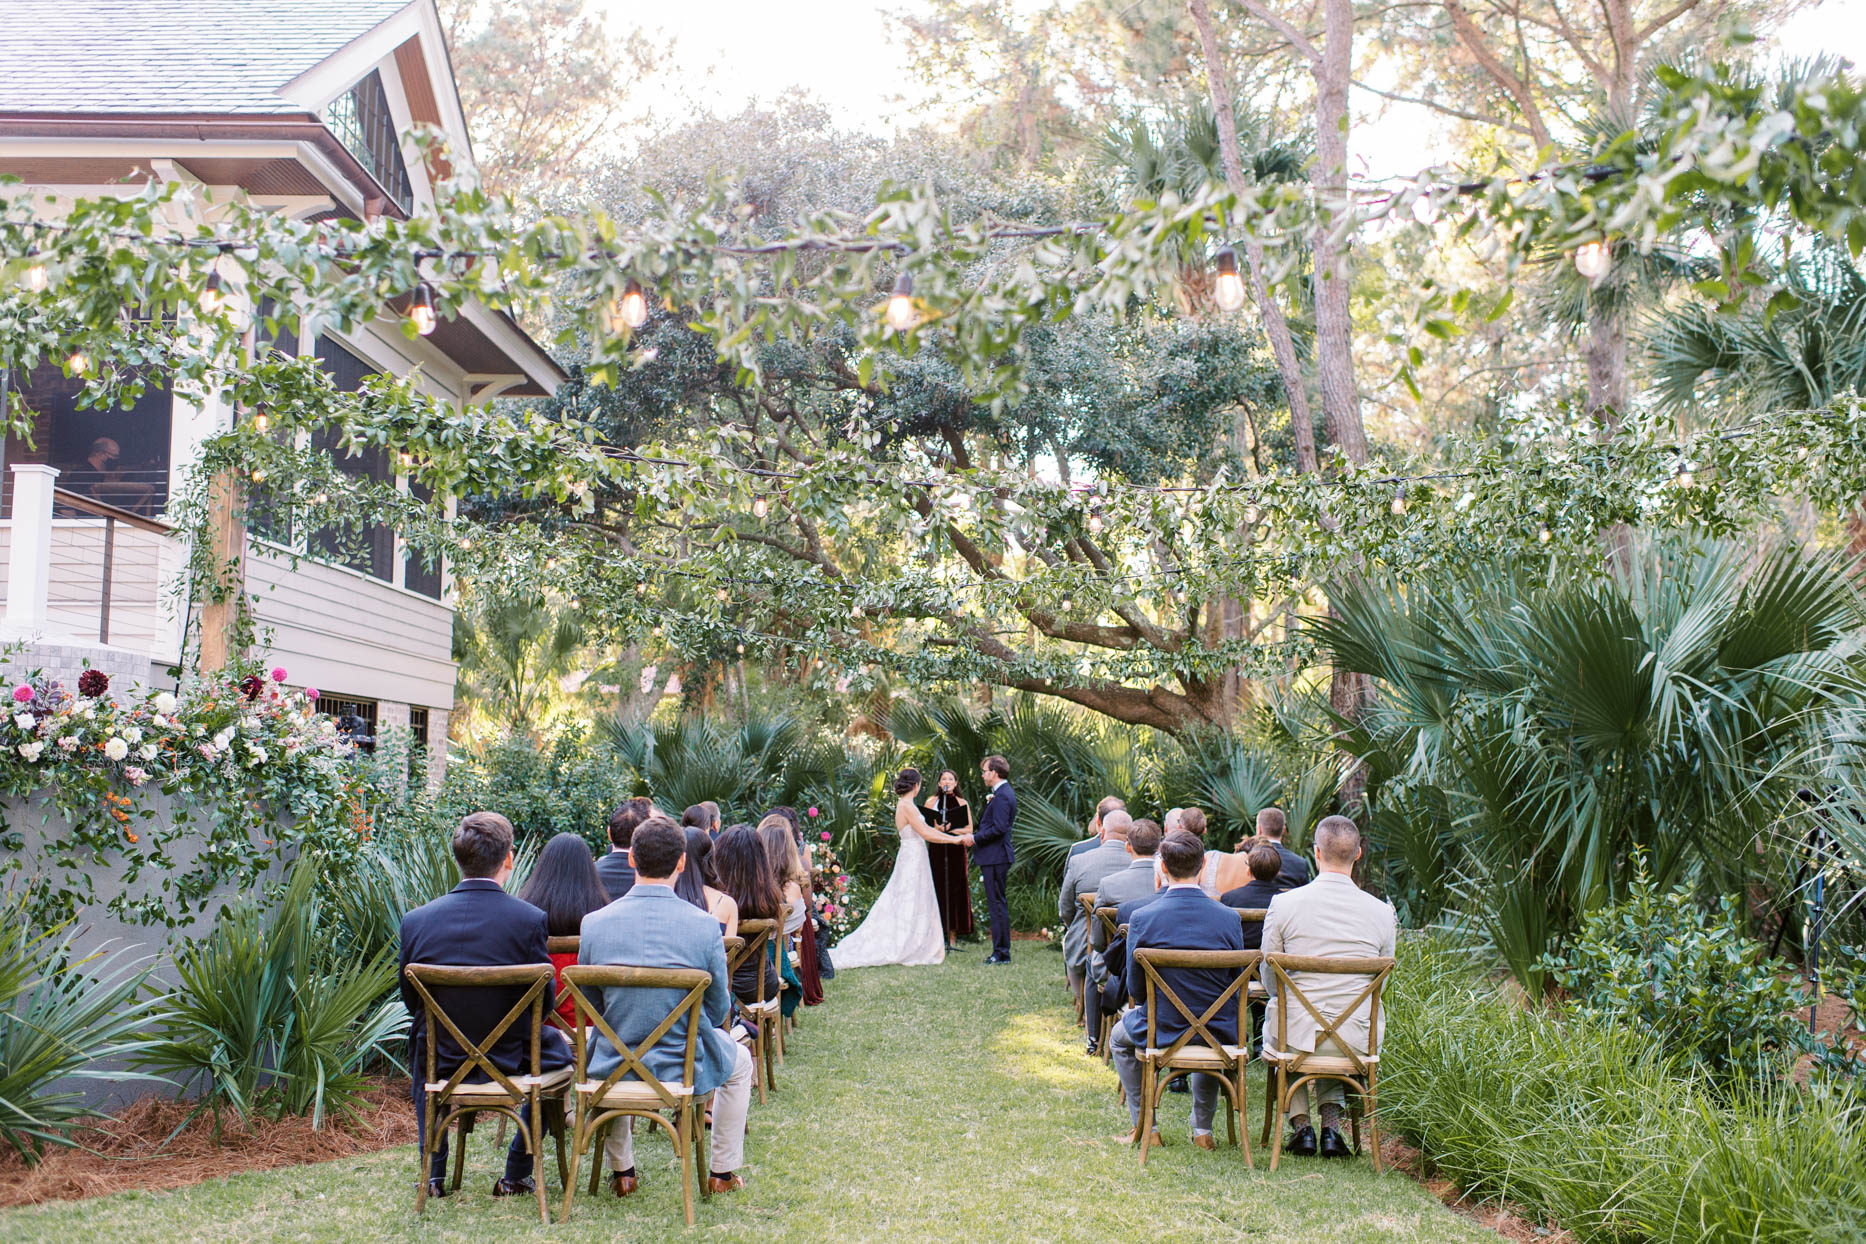 small outdoor ceremony in backyard with wooden chairs